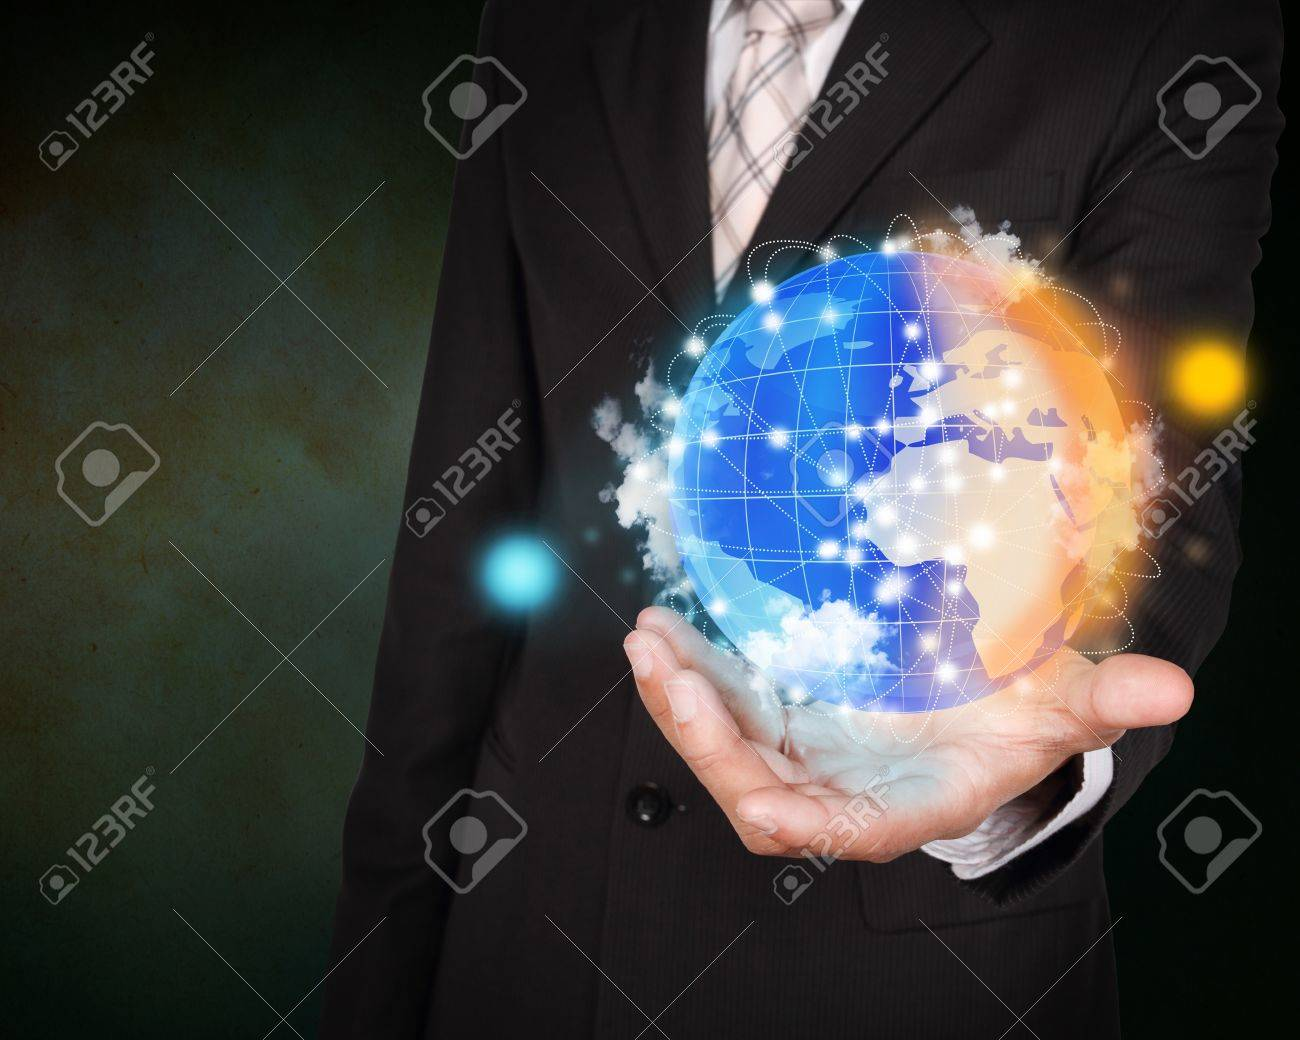 Day and night planet system concept on business hand Stock Photo - 17727005